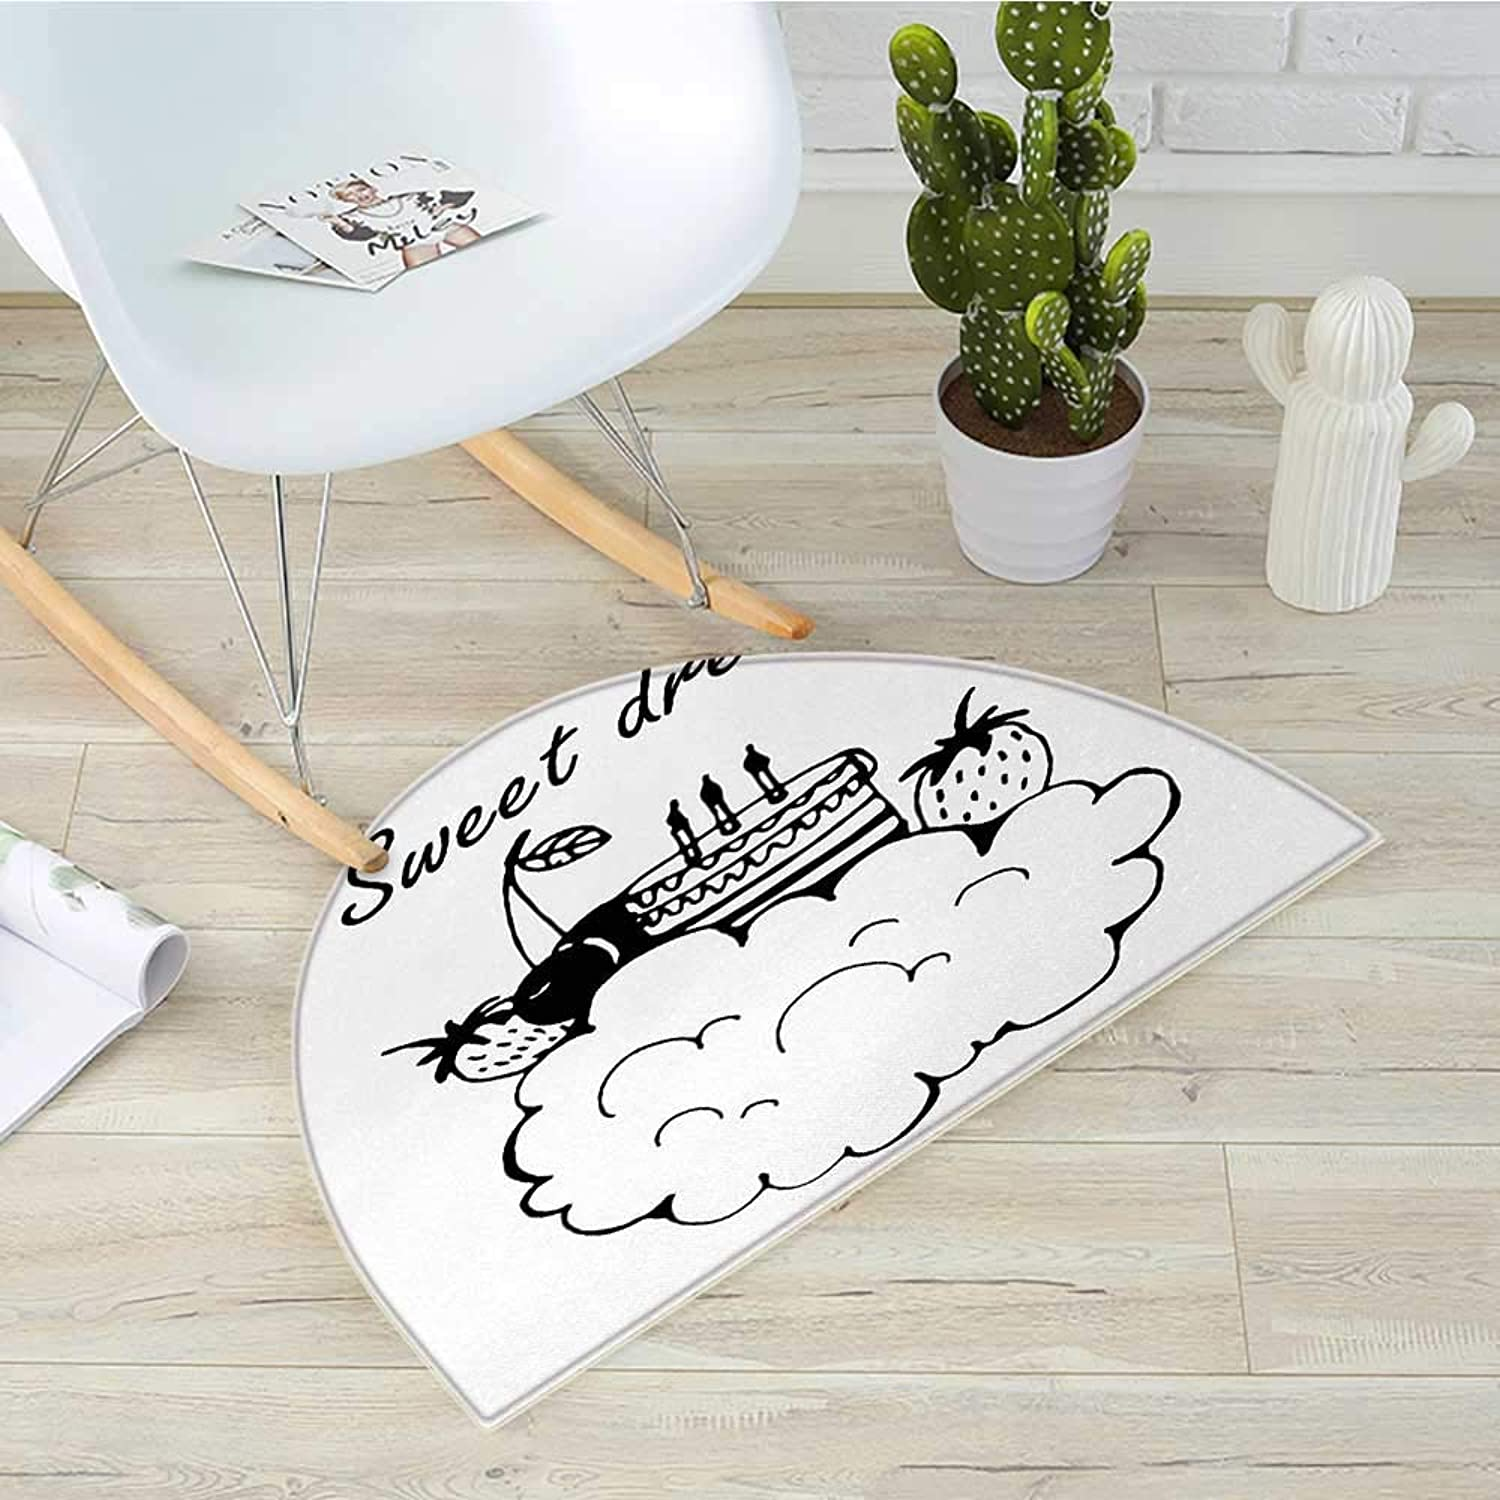 Sweet Dreams Semicircular CushionDoodle Style Birthday Cake with Berry Fruits on a Cloud Monochrome Design Entry Door Mat H 35.4  xD 53.1  Black and White